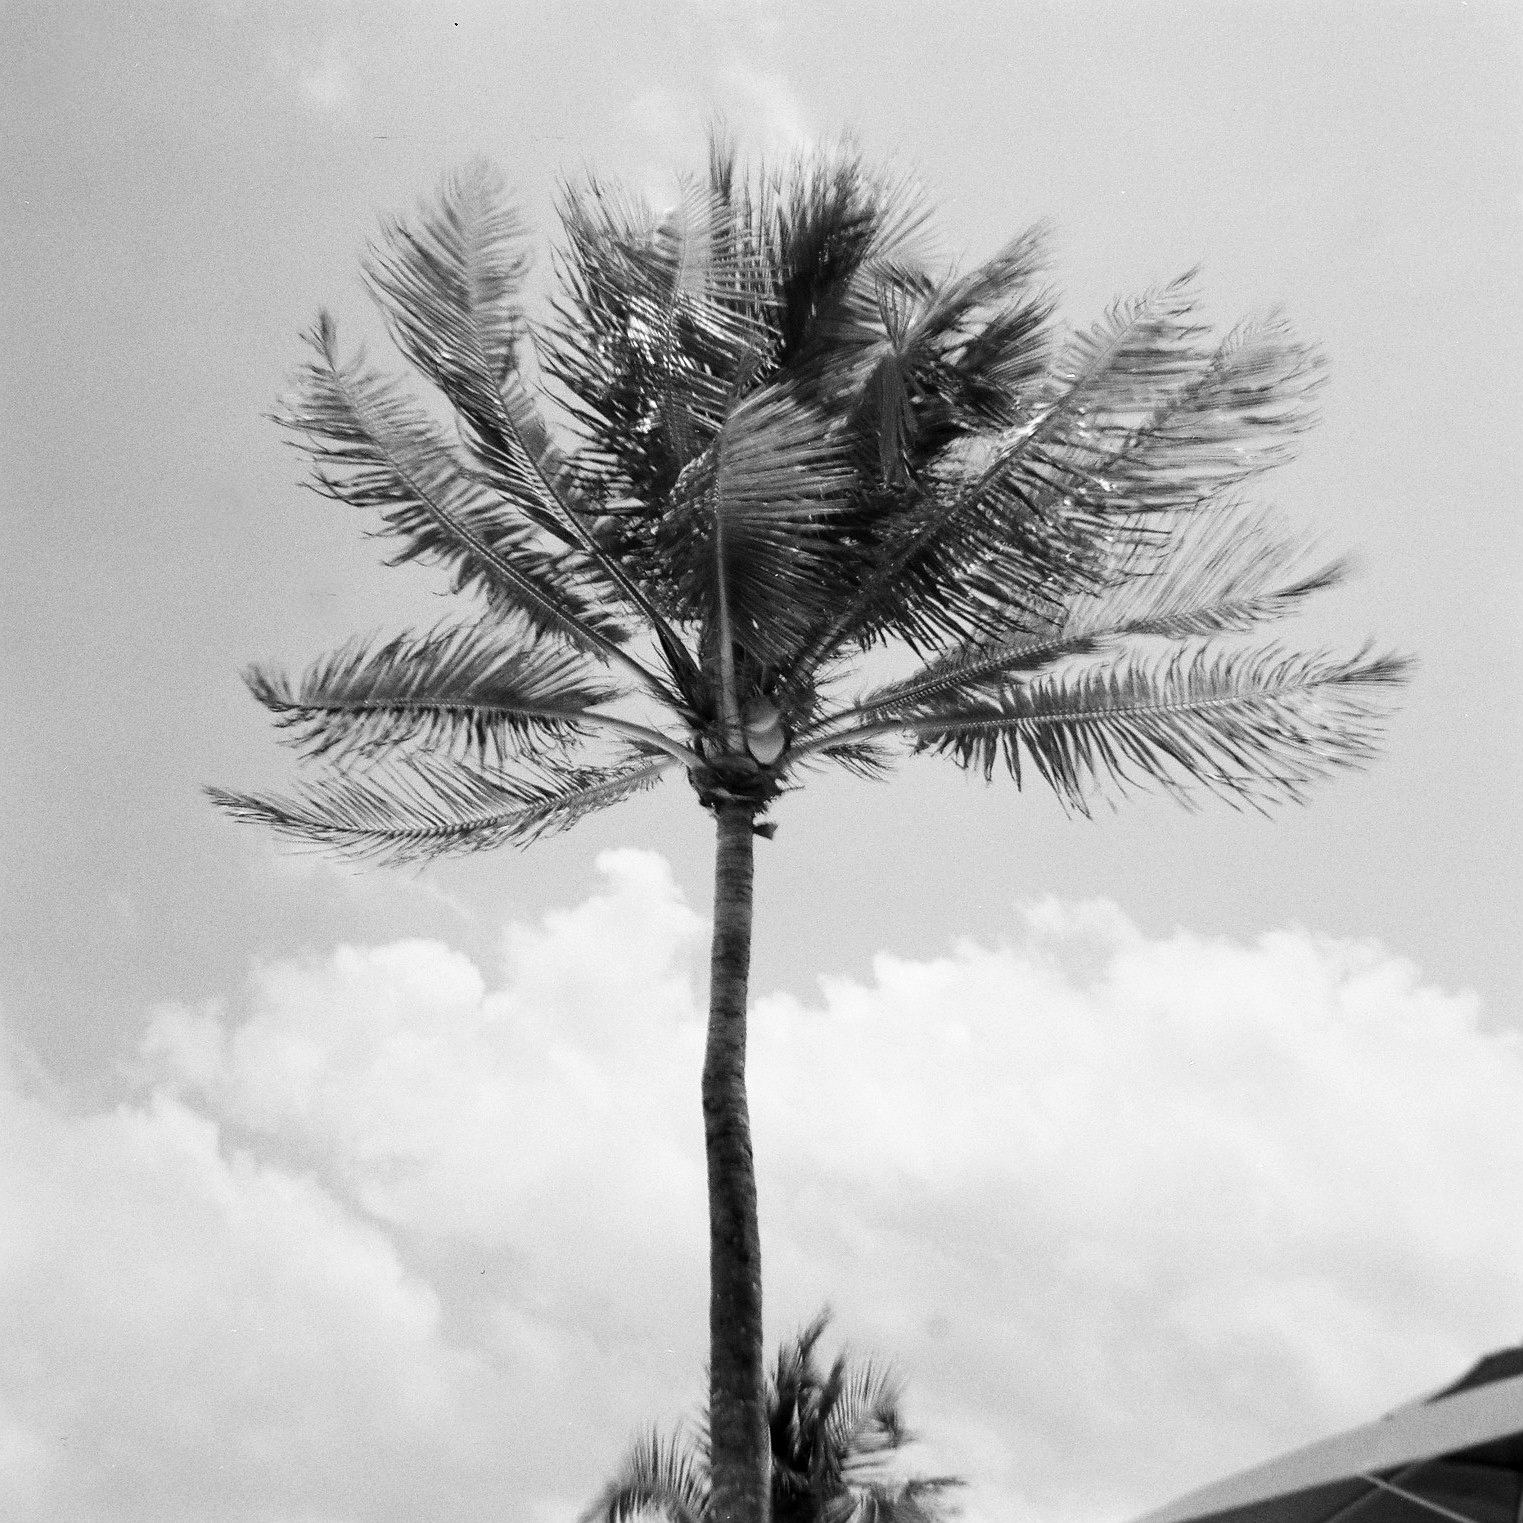 Palm tree, Mexico © Tanya Clarke 2018